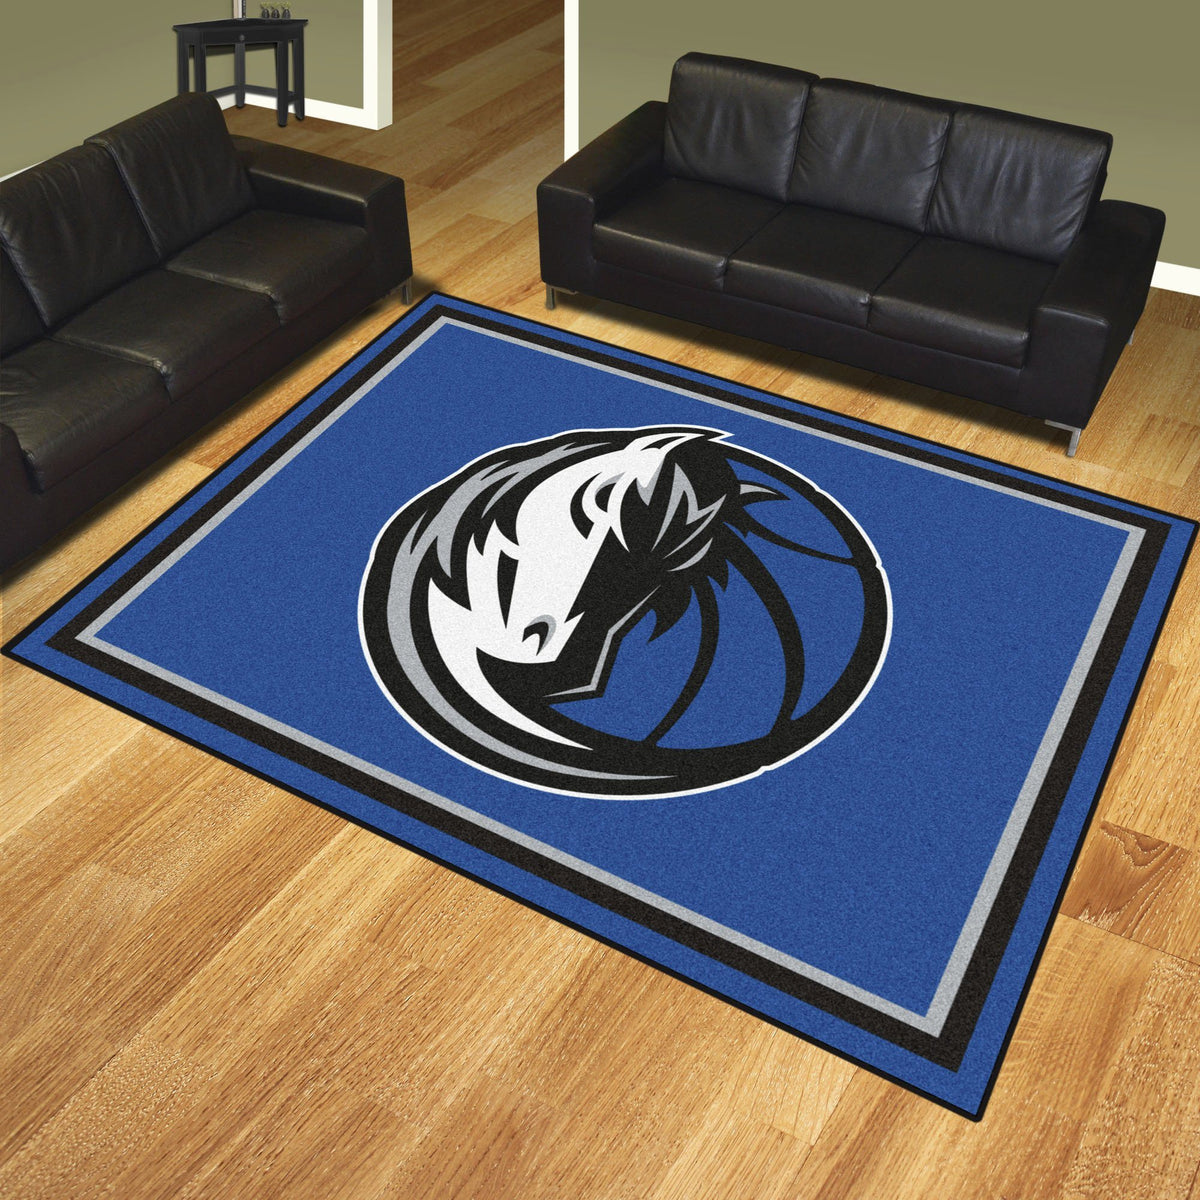 NBA - 8' x 10' Rug NBA Mats, Plush Rugs, 8x10 Rug, NBA, Home Fan Mats Dallas Mavericks